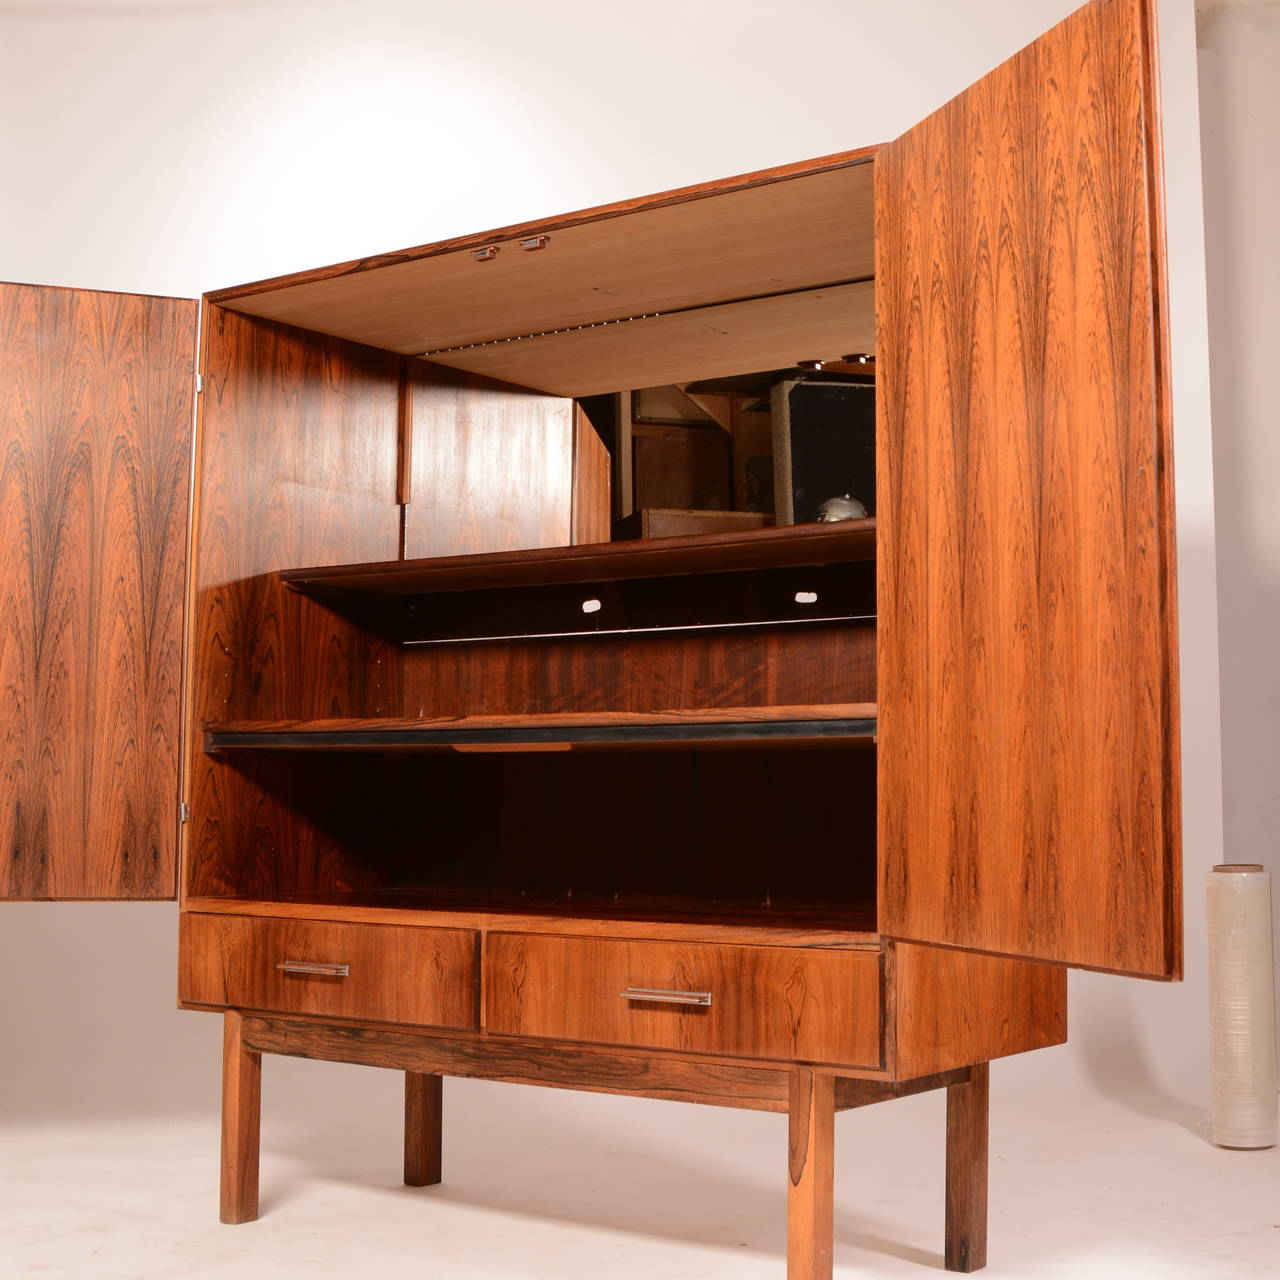 This Mid Century Danish Modern Rosewood Bar Cabinet Is In Good Vintage Condition It Includes